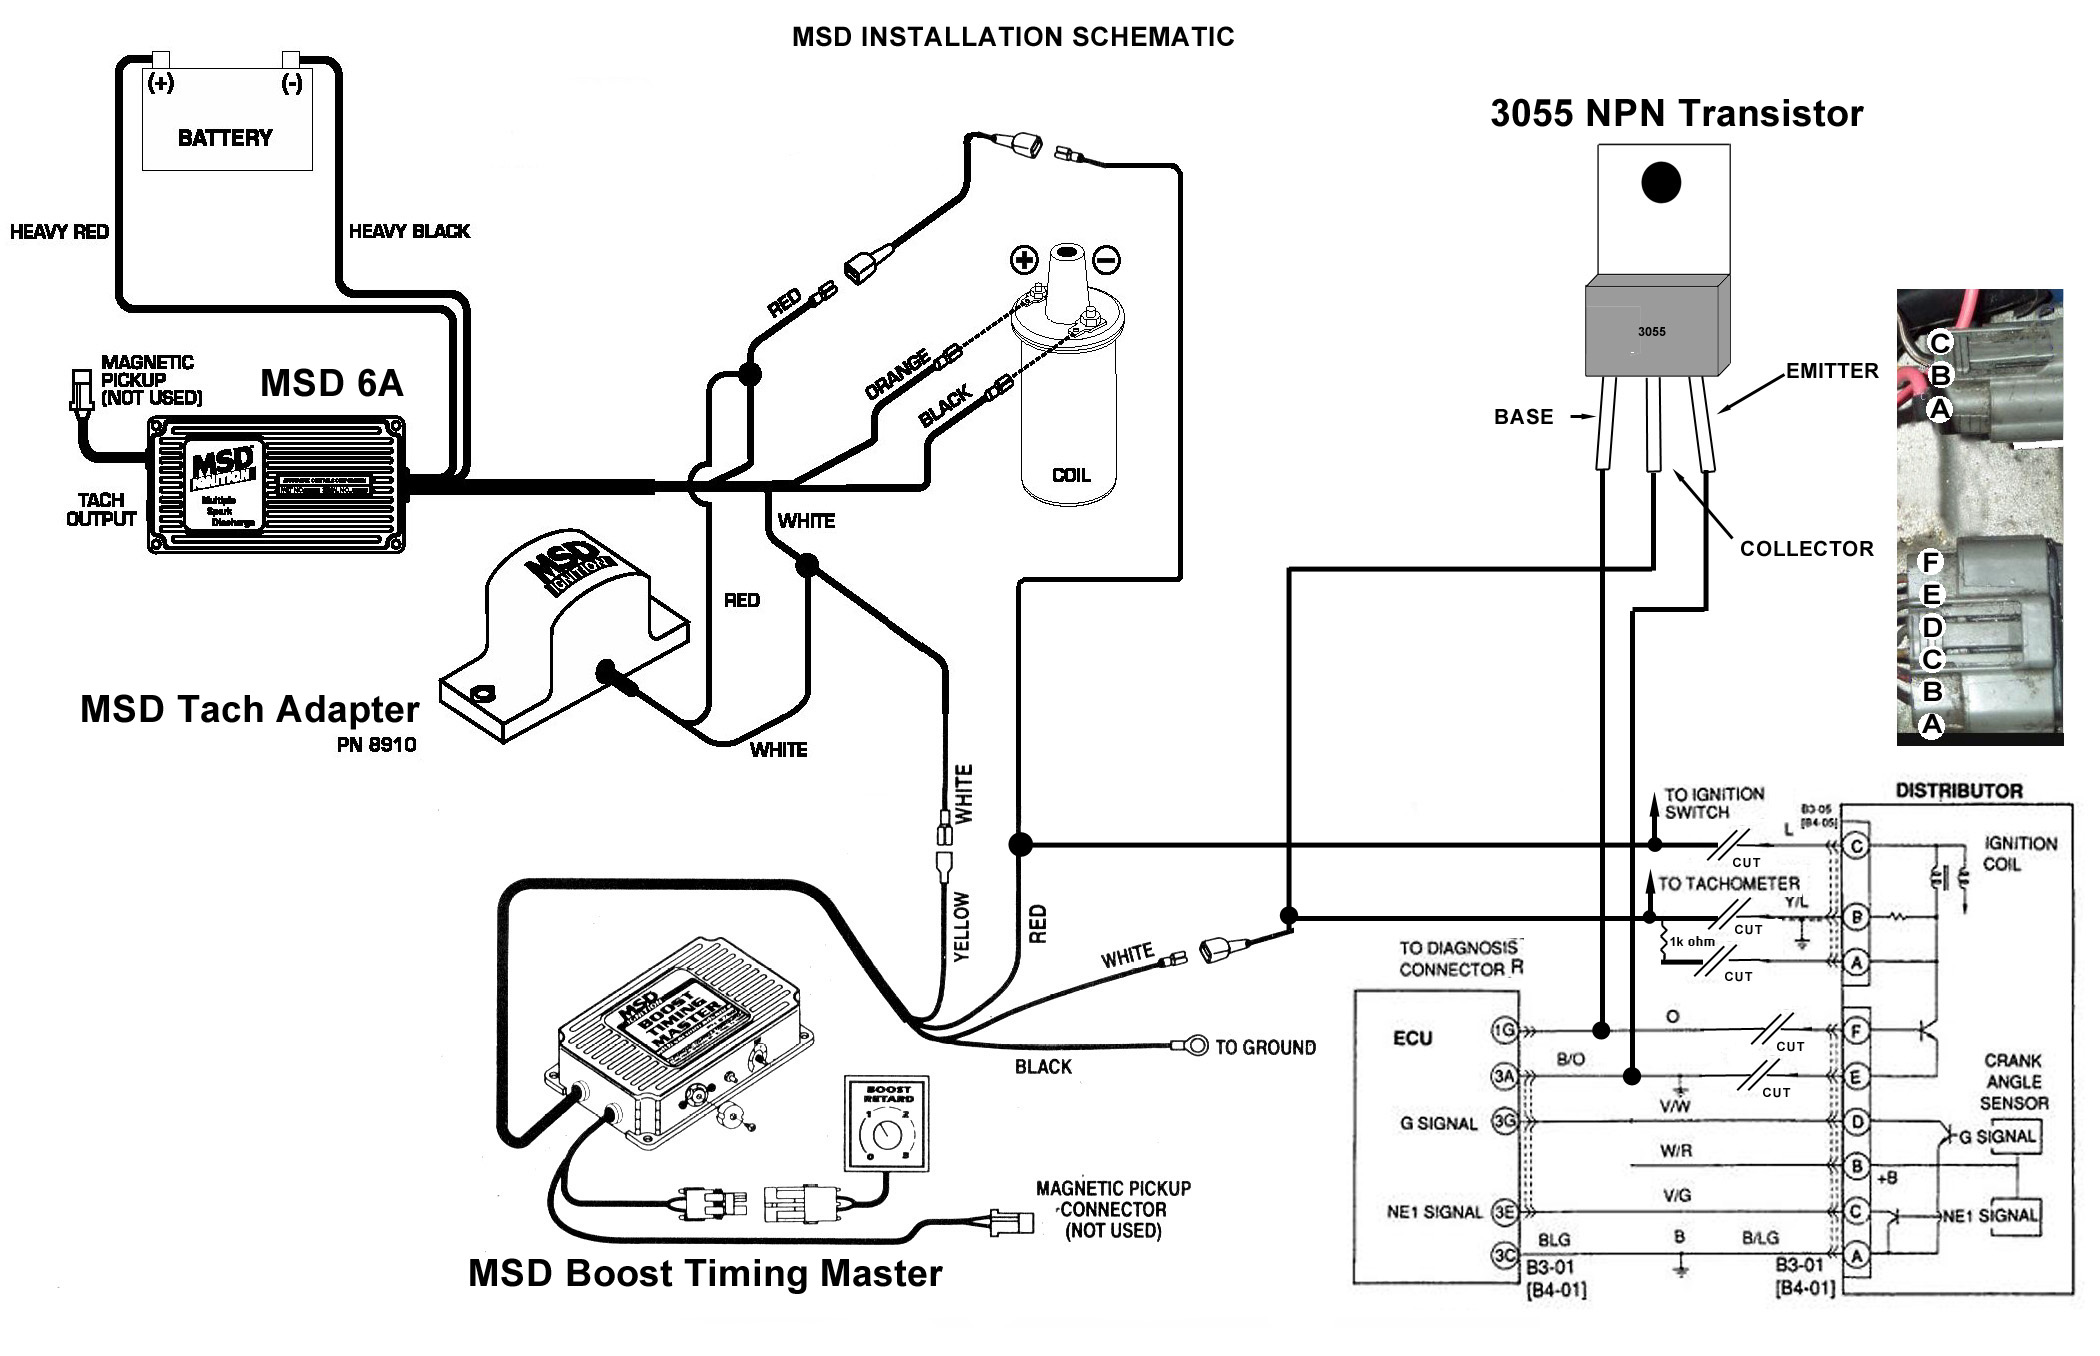 rx8 engine diagram sed yogaundstille de \u2022mazda rx8 wiring diagram wiring diagram rh 8 malibustixx de rx8 rotary engine diagram 2008 mazda rx8 engine diagram